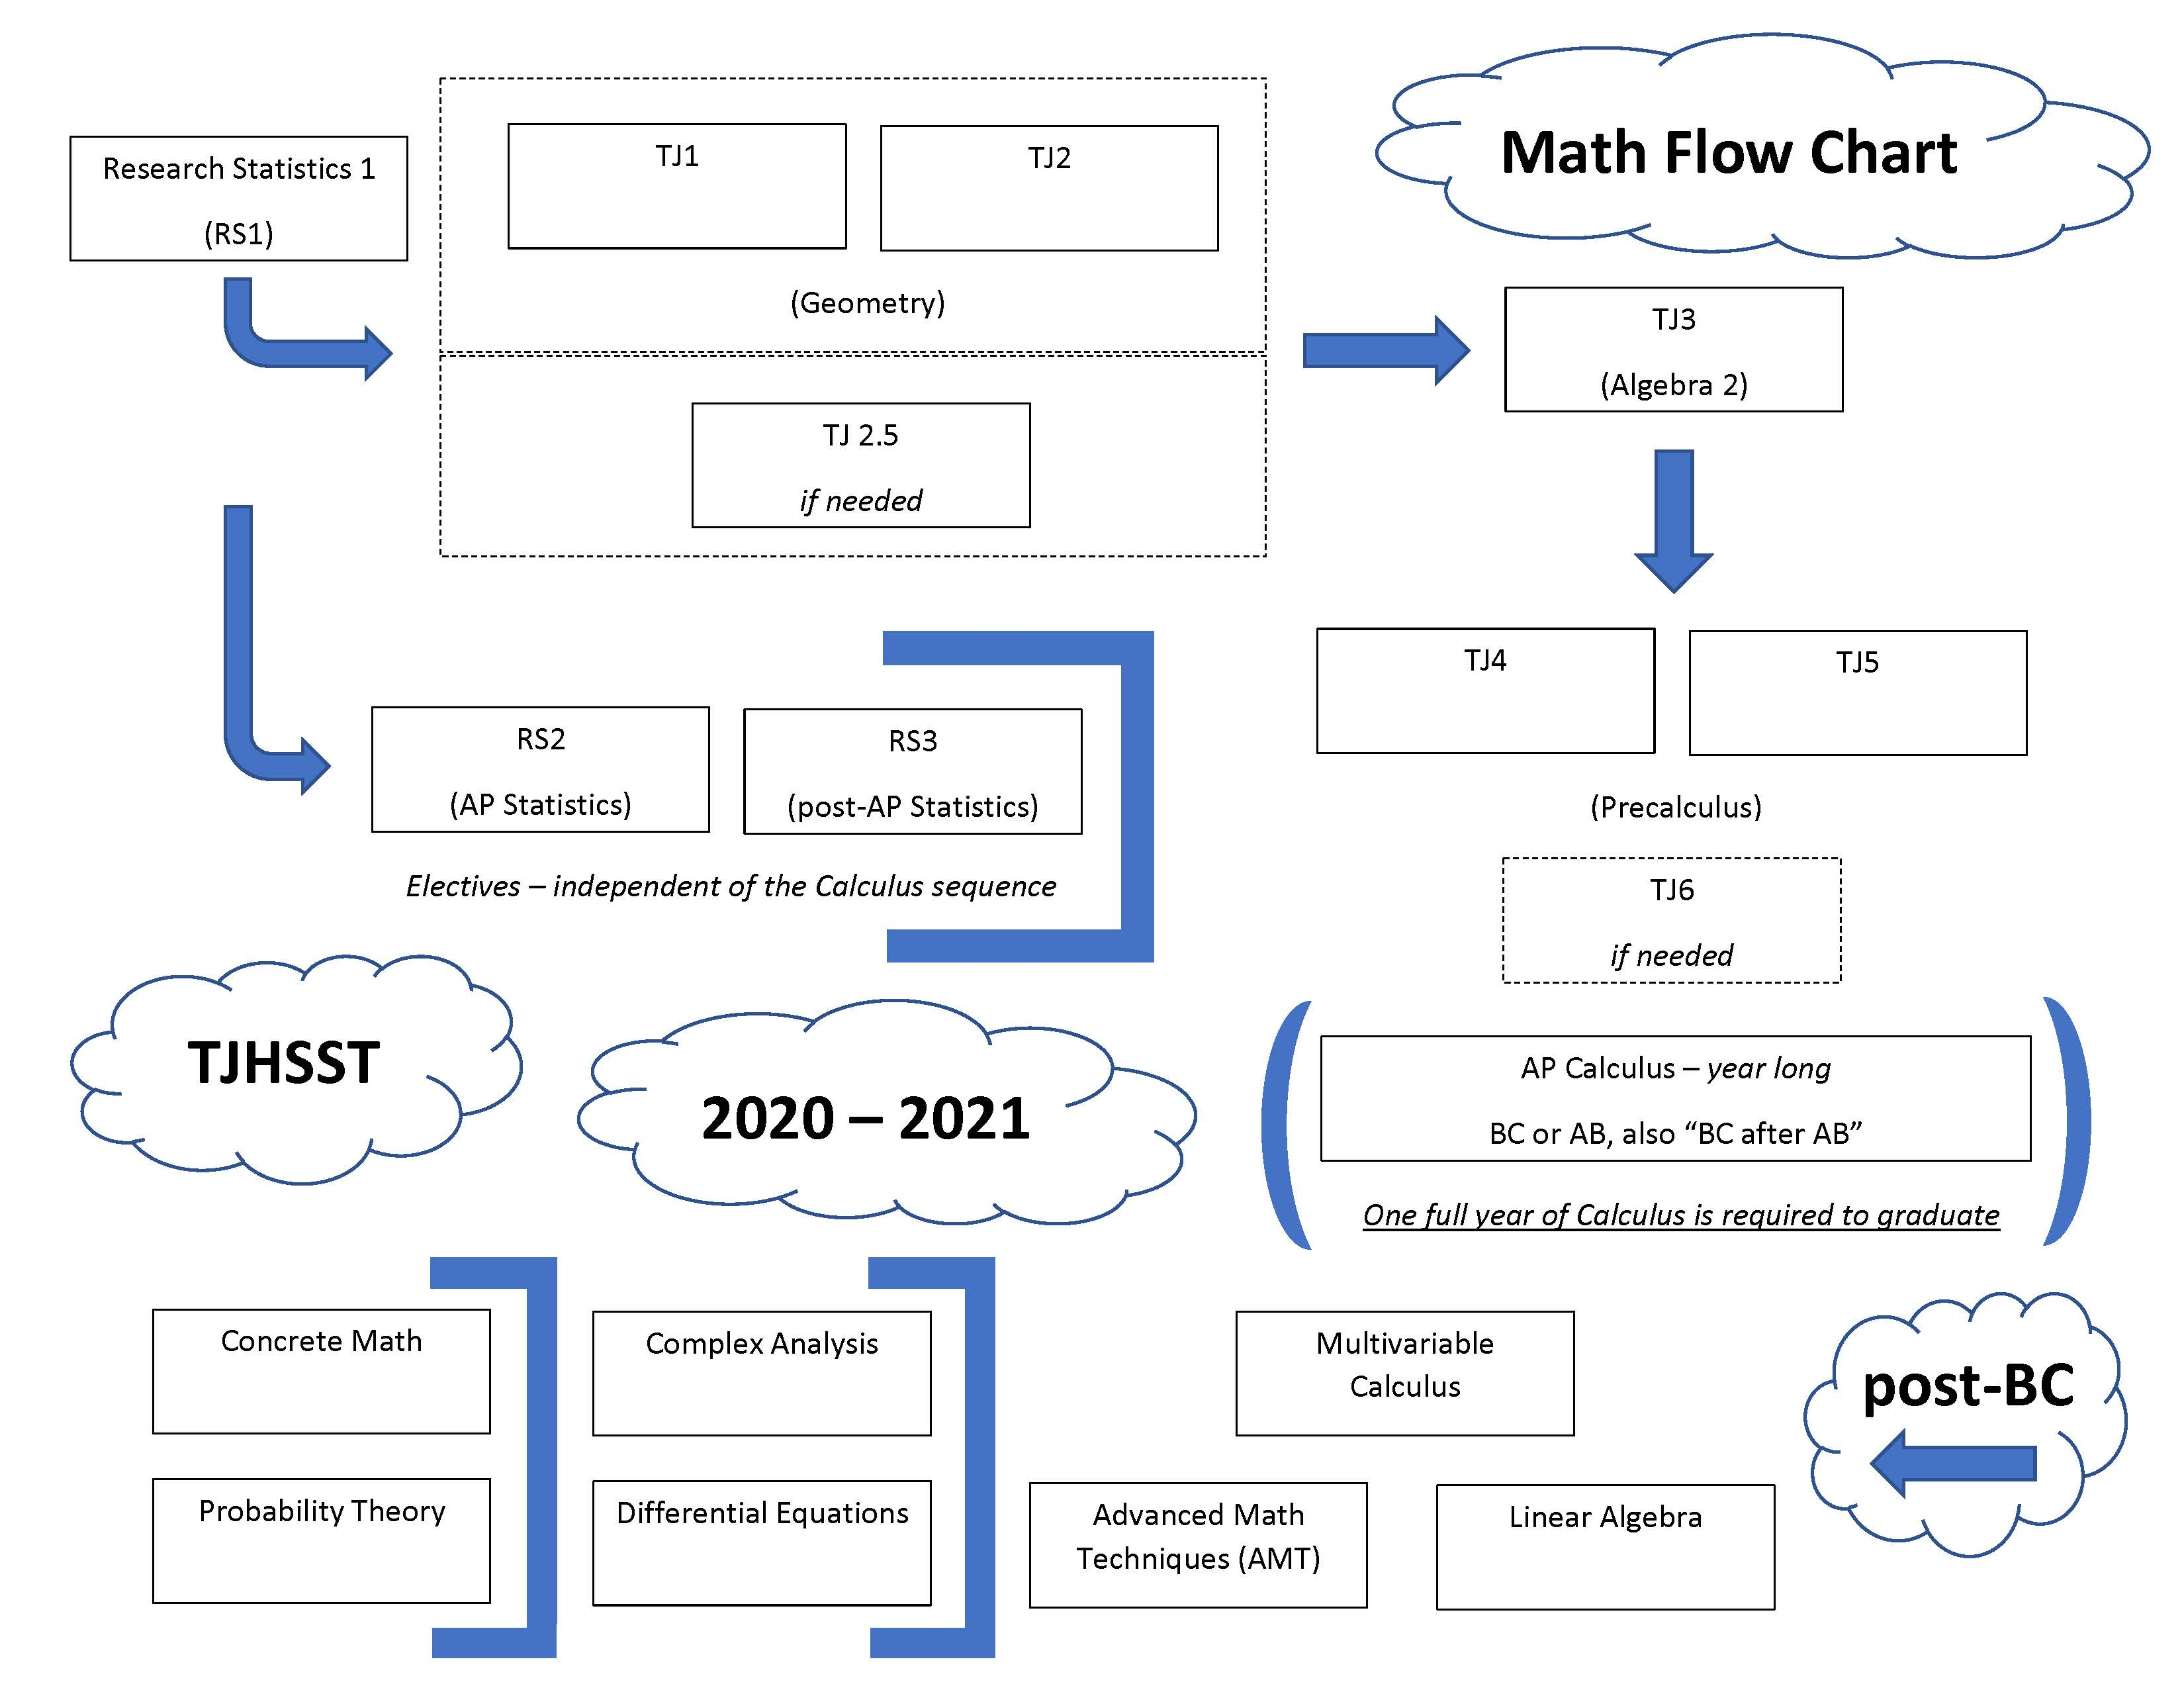 Flow chart of math courses